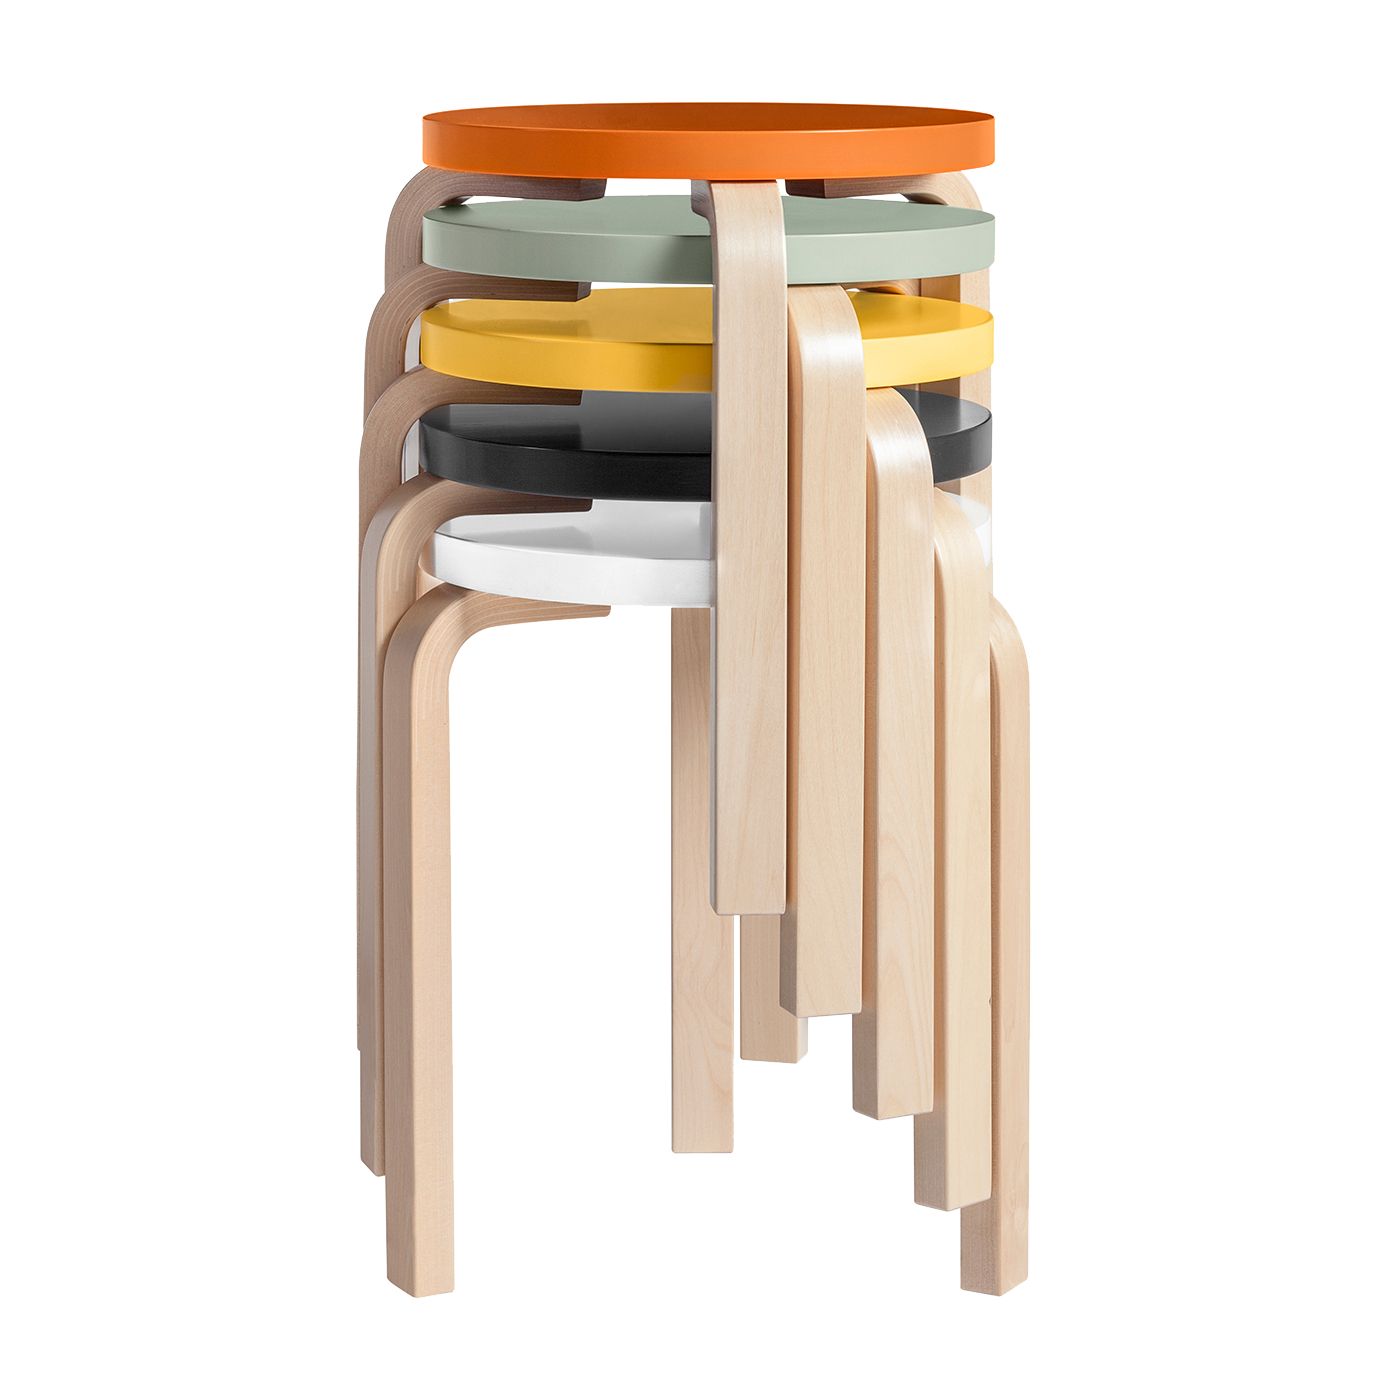 alvar aalto furniture. Stool 60 By Alvar Aalto-0 Aalto Furniture